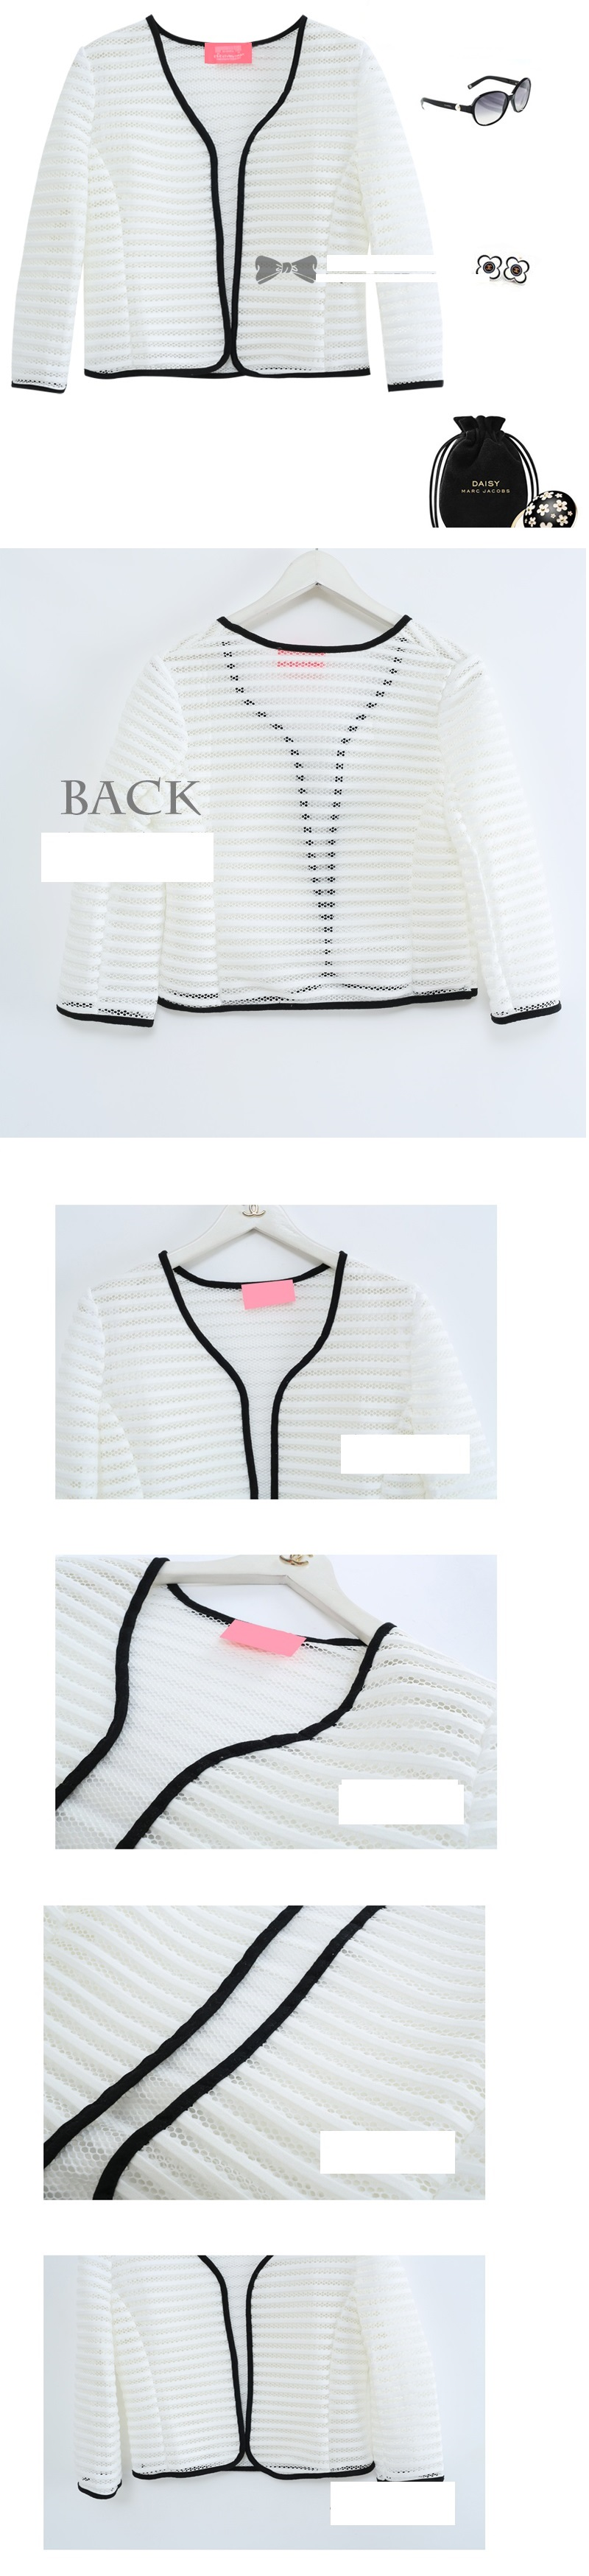 aKorea Unique three-dimensional air-conditioned cardigan jacket